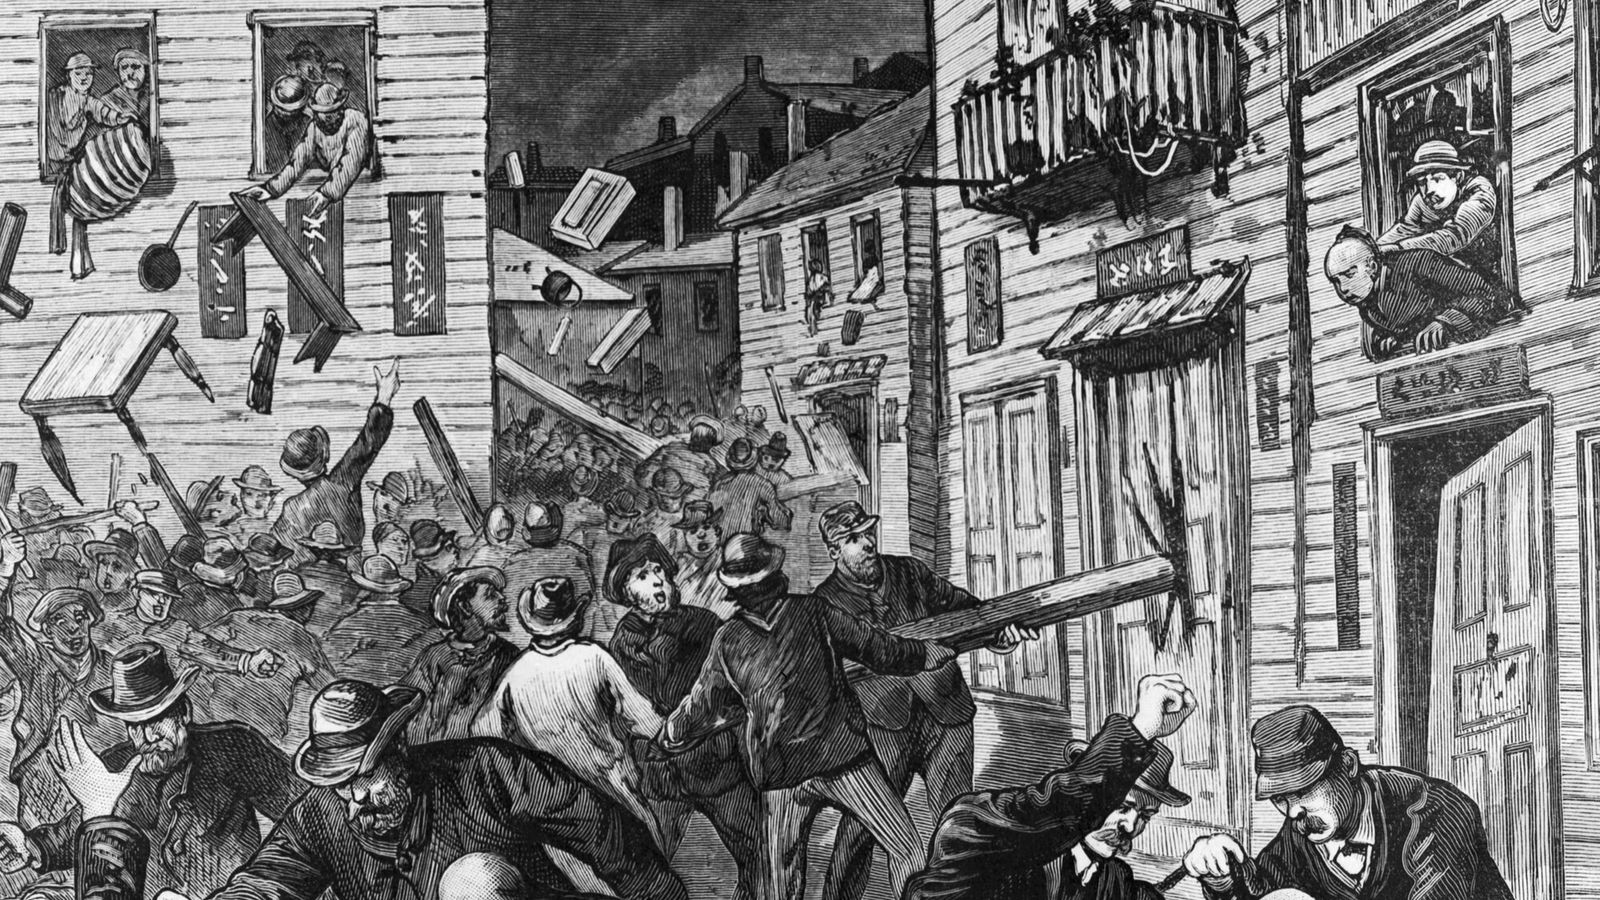 Illustration of an Anti-Chinese Riot of 1880